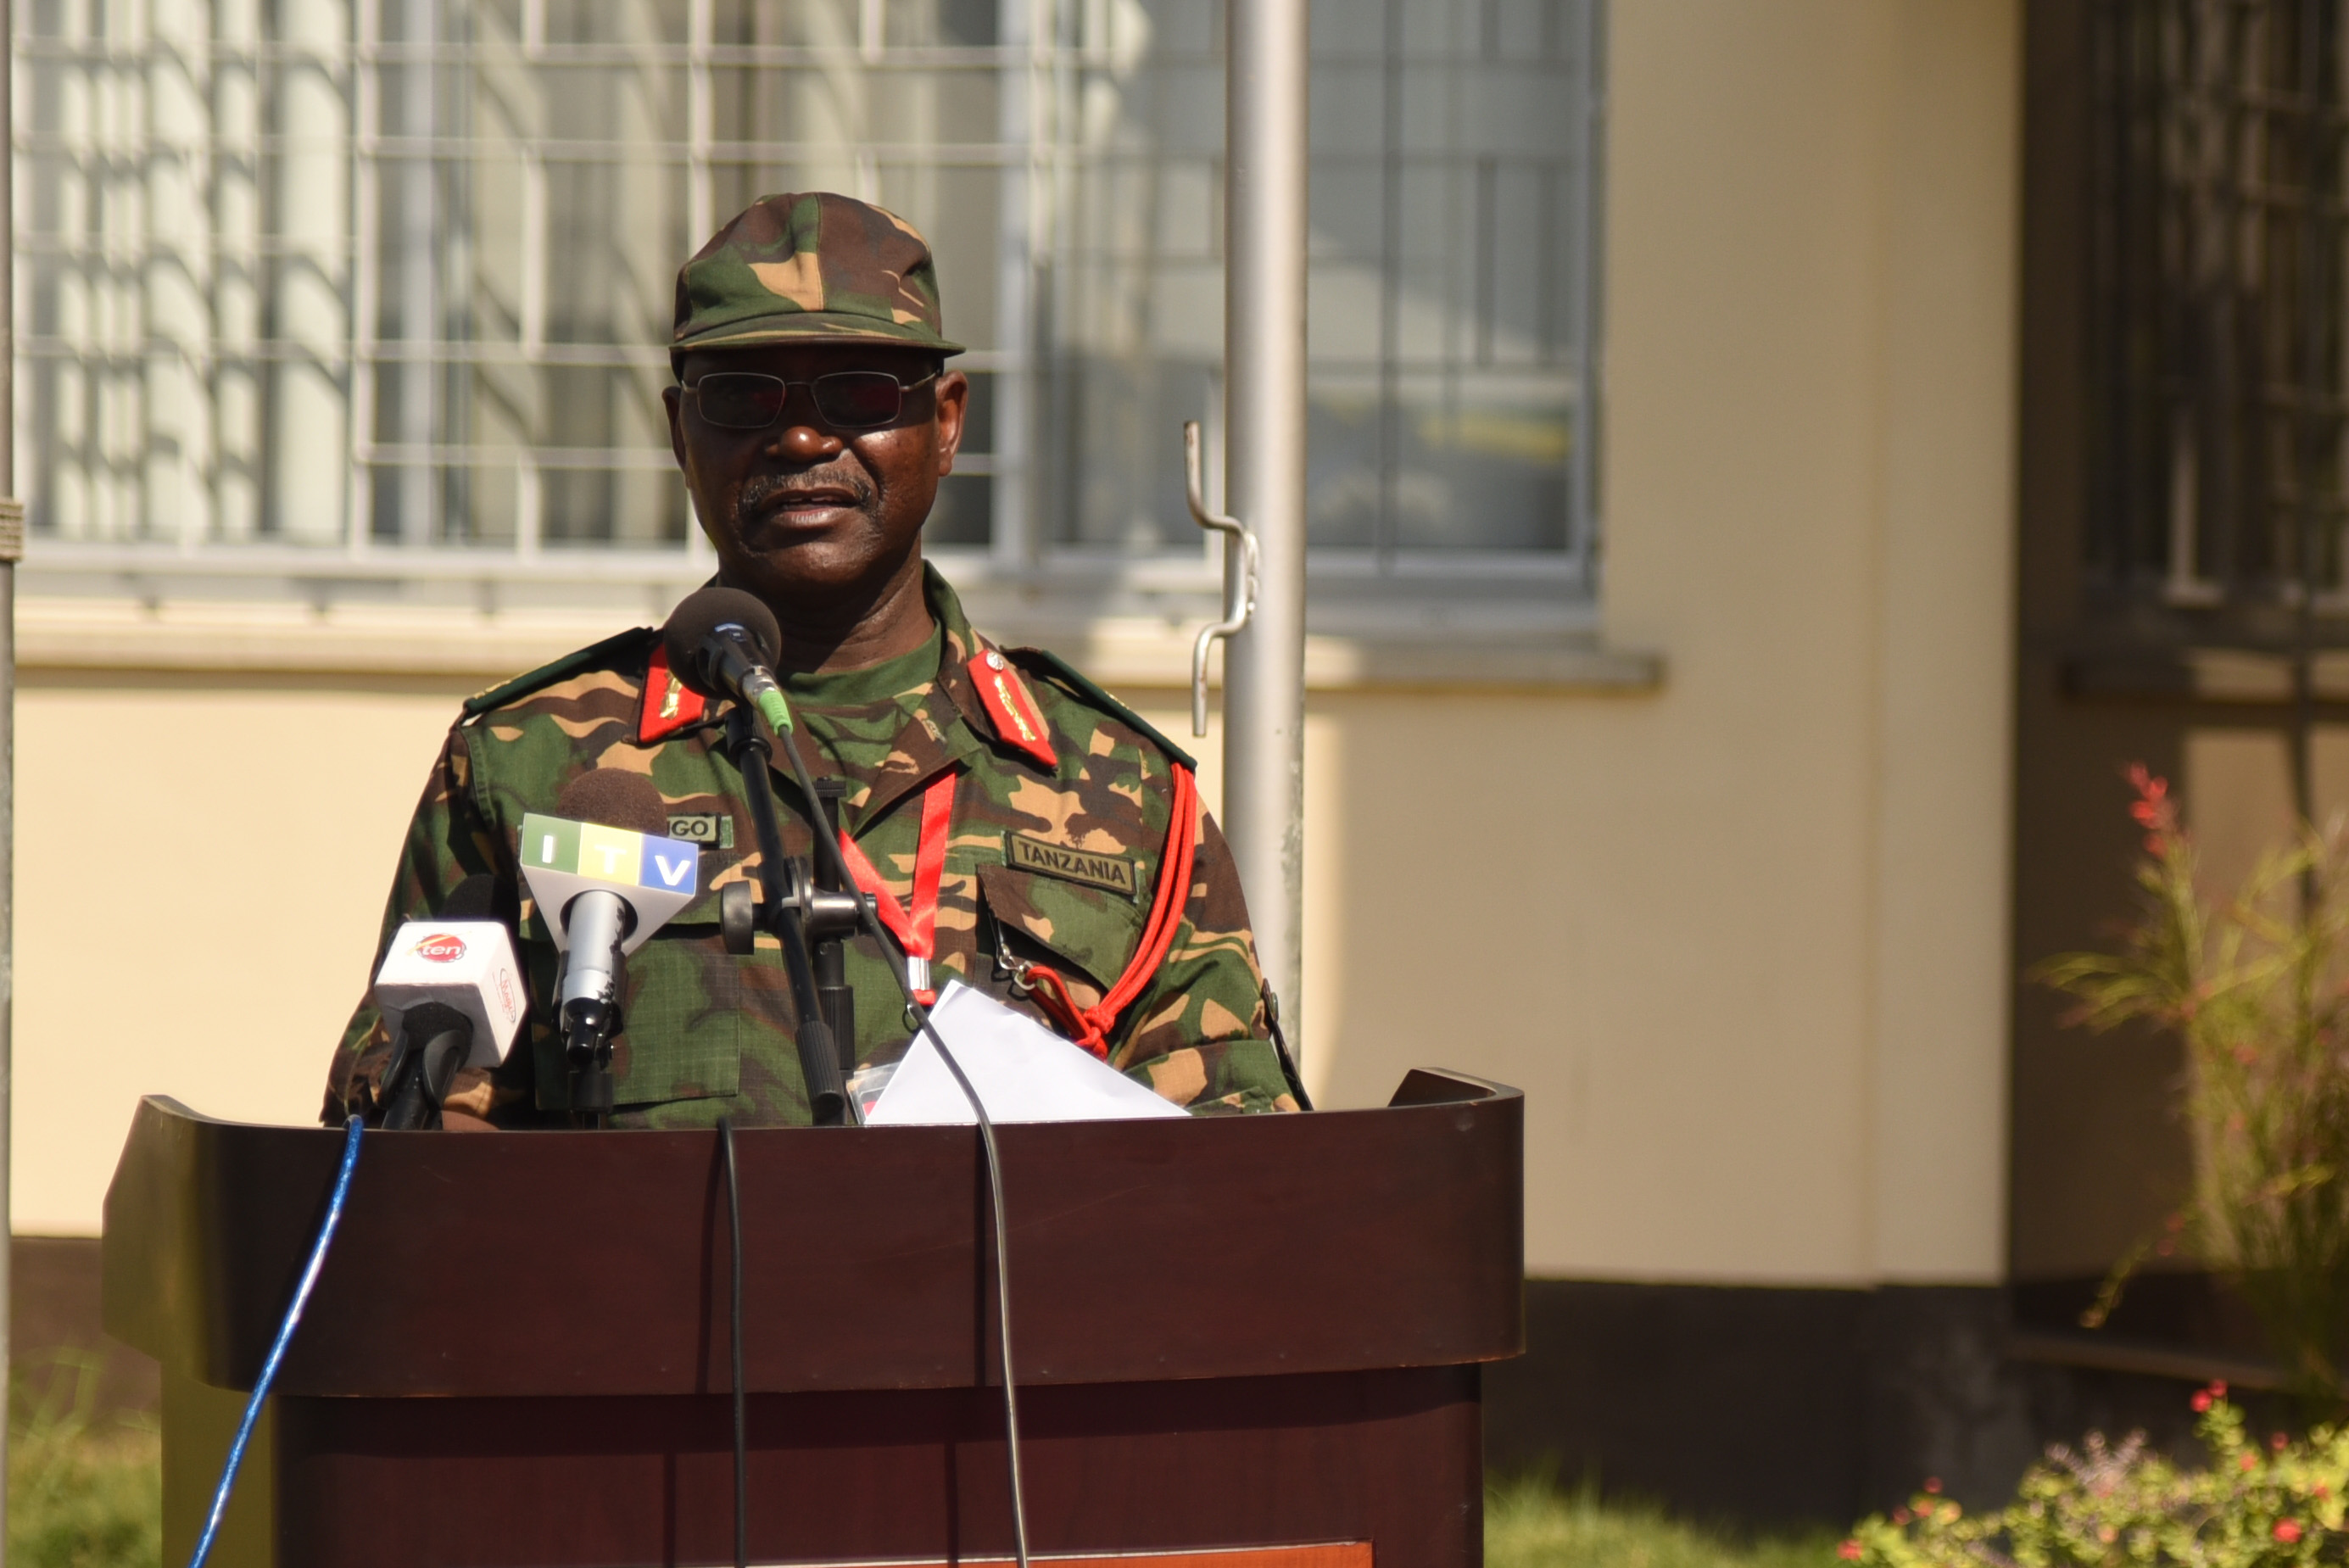 DAR ES SALAAM, Tanzania – Tanzanian Brig. Gen. Yohana Ocholla Mabongo, Eastern Accord 2016 exercise co-director, welcomes the participants to the Eastern Accord 2016 command post exercise during the Opening Ceremony at the Tanzanian Peacekeeping Training Centre on July, 11, 2016, in Dar es Salaam, Tanzania. EA16 is an annual, combined, joint military exercise that brings together partner nations to practice and demonstrate proficiency in conducting peacekeeping operations. (U.S. Air Force photo by Staff Sgt. Tiffany DeNault)